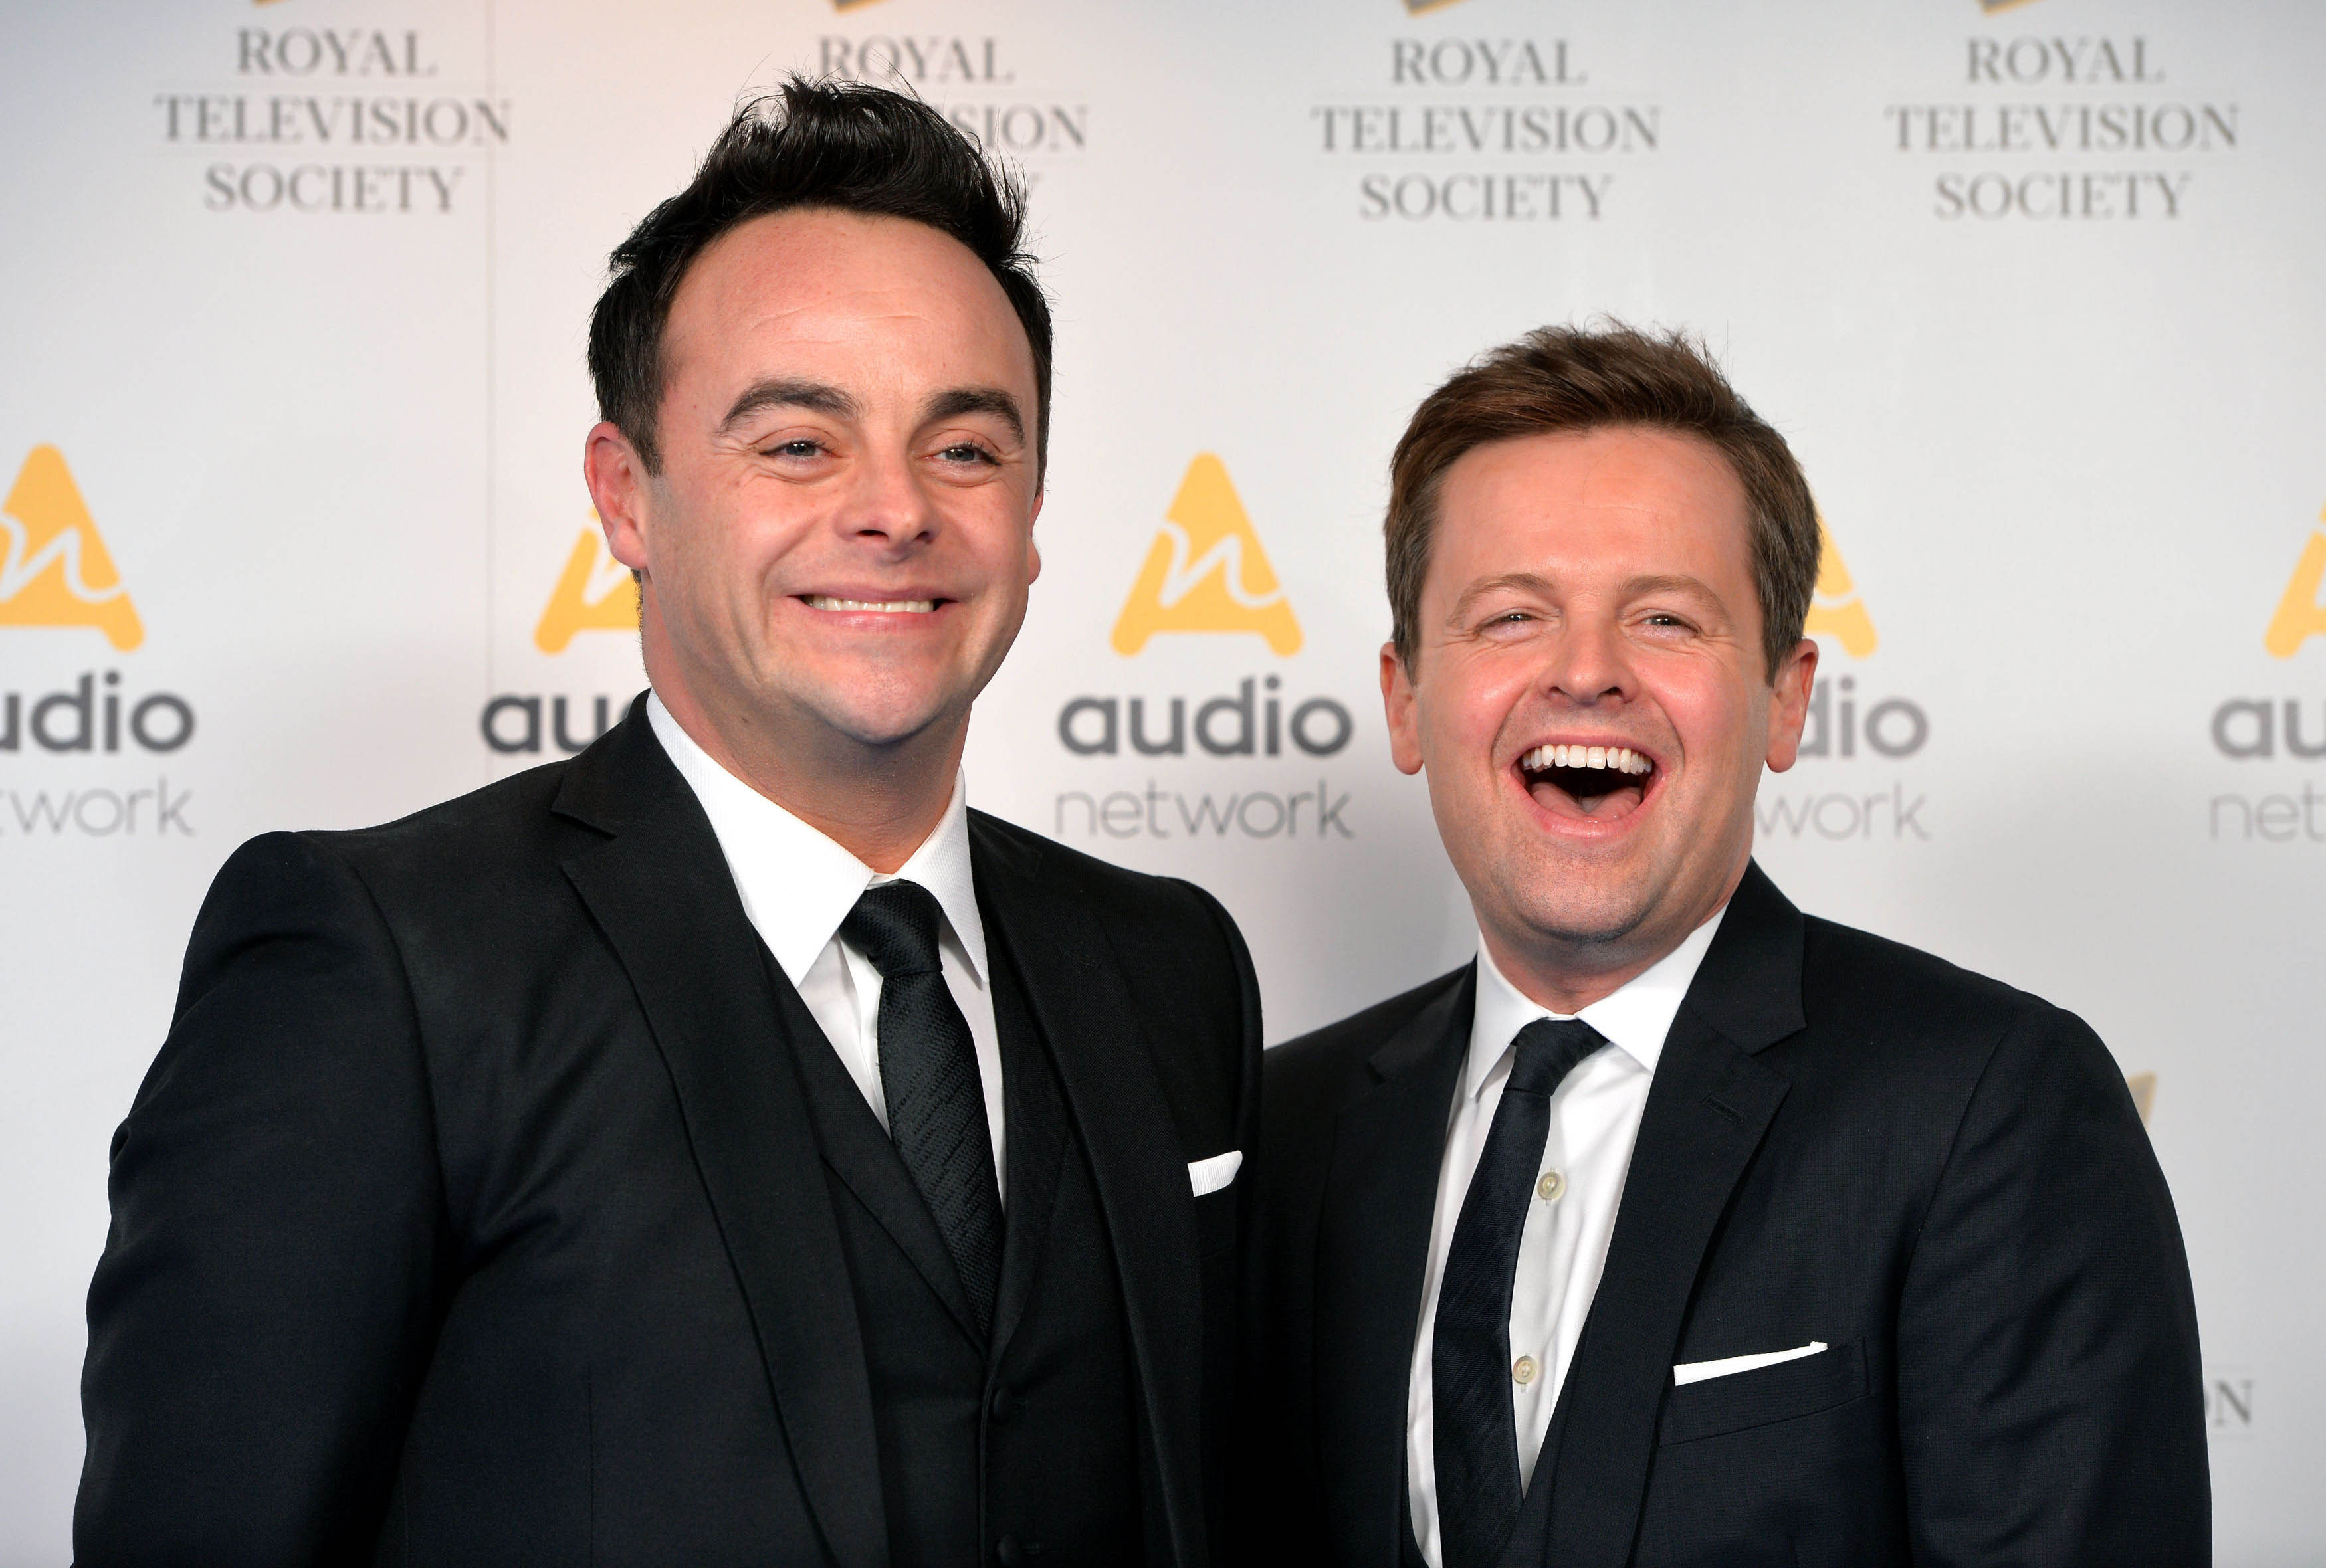 Ant McPartlin and Dec Donnelly on the red carpet